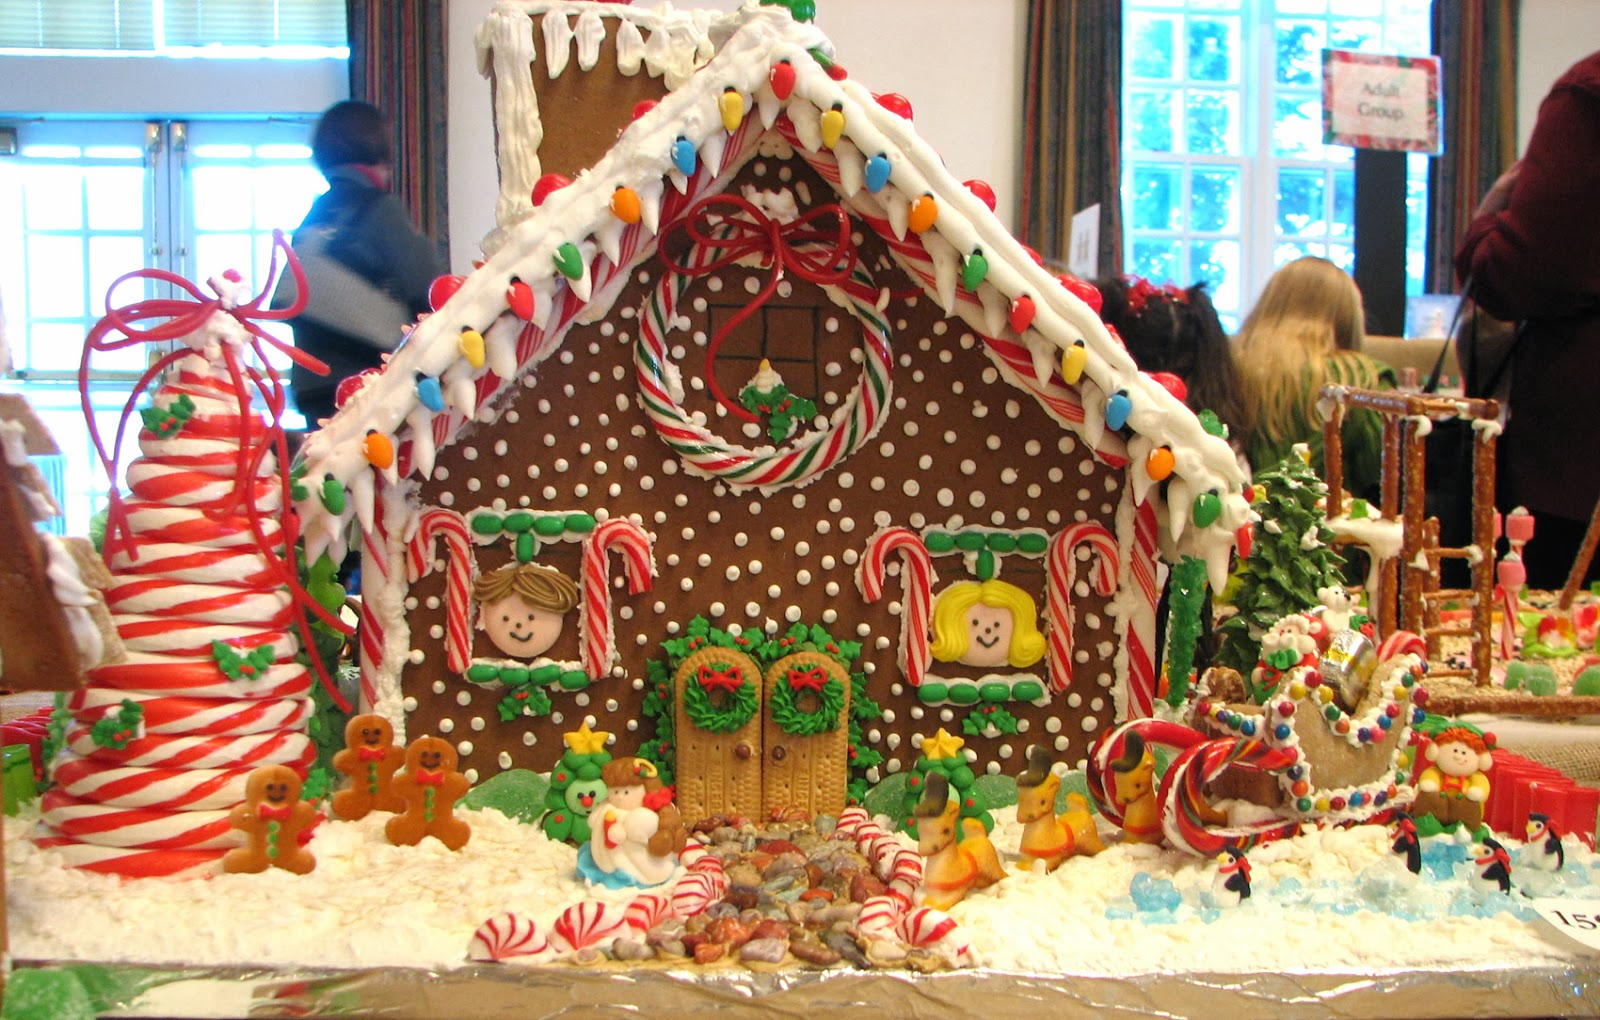 Decorating Gingerbread House Workshop